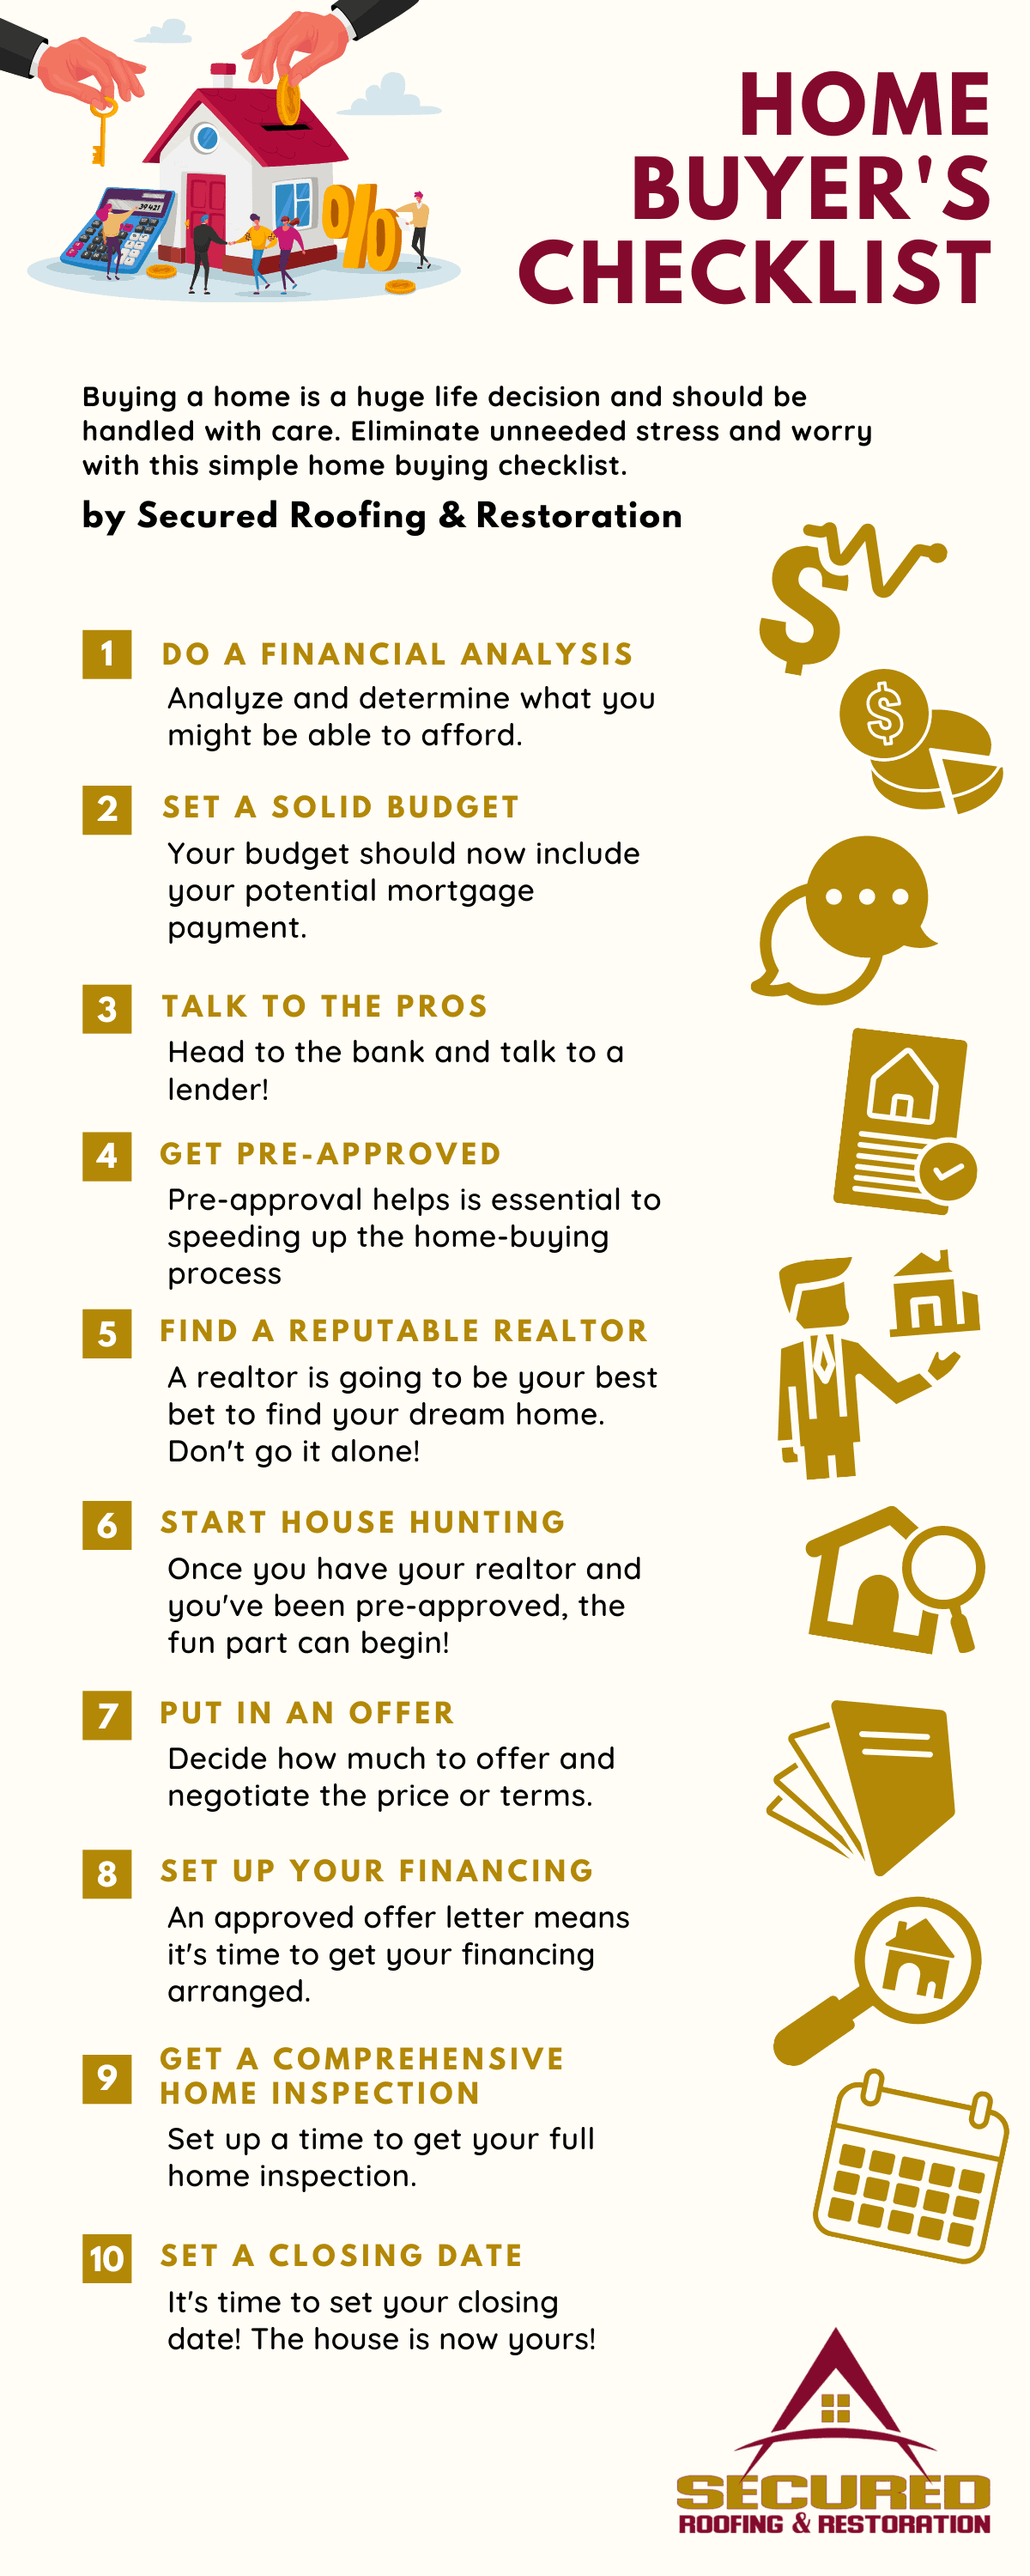 home buyer's checklist infographic